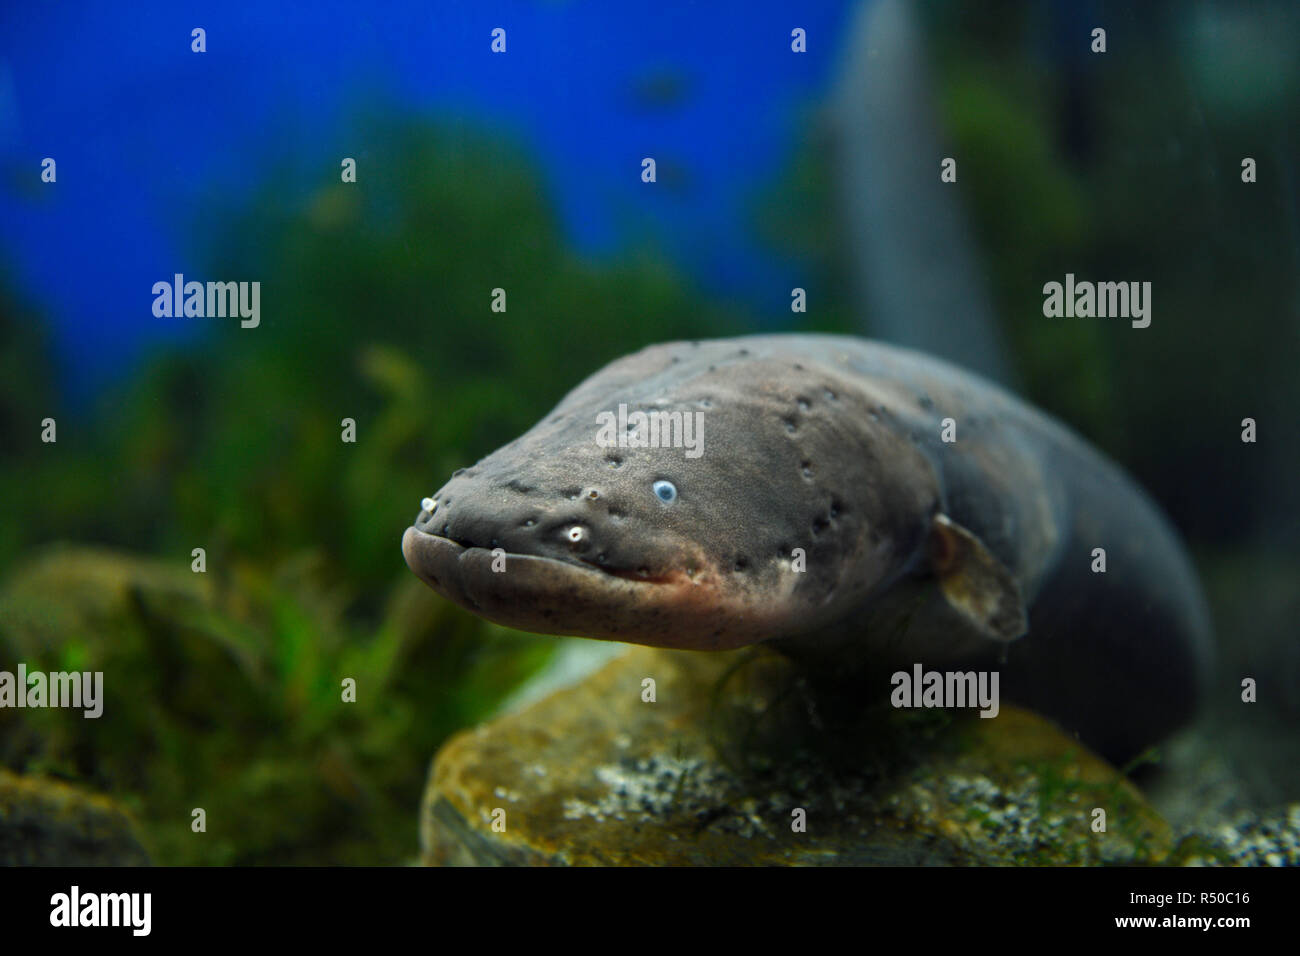 Face of an Electric Eel which is not an eel but an air breathing South American electric fish or knifefish - Stock Image